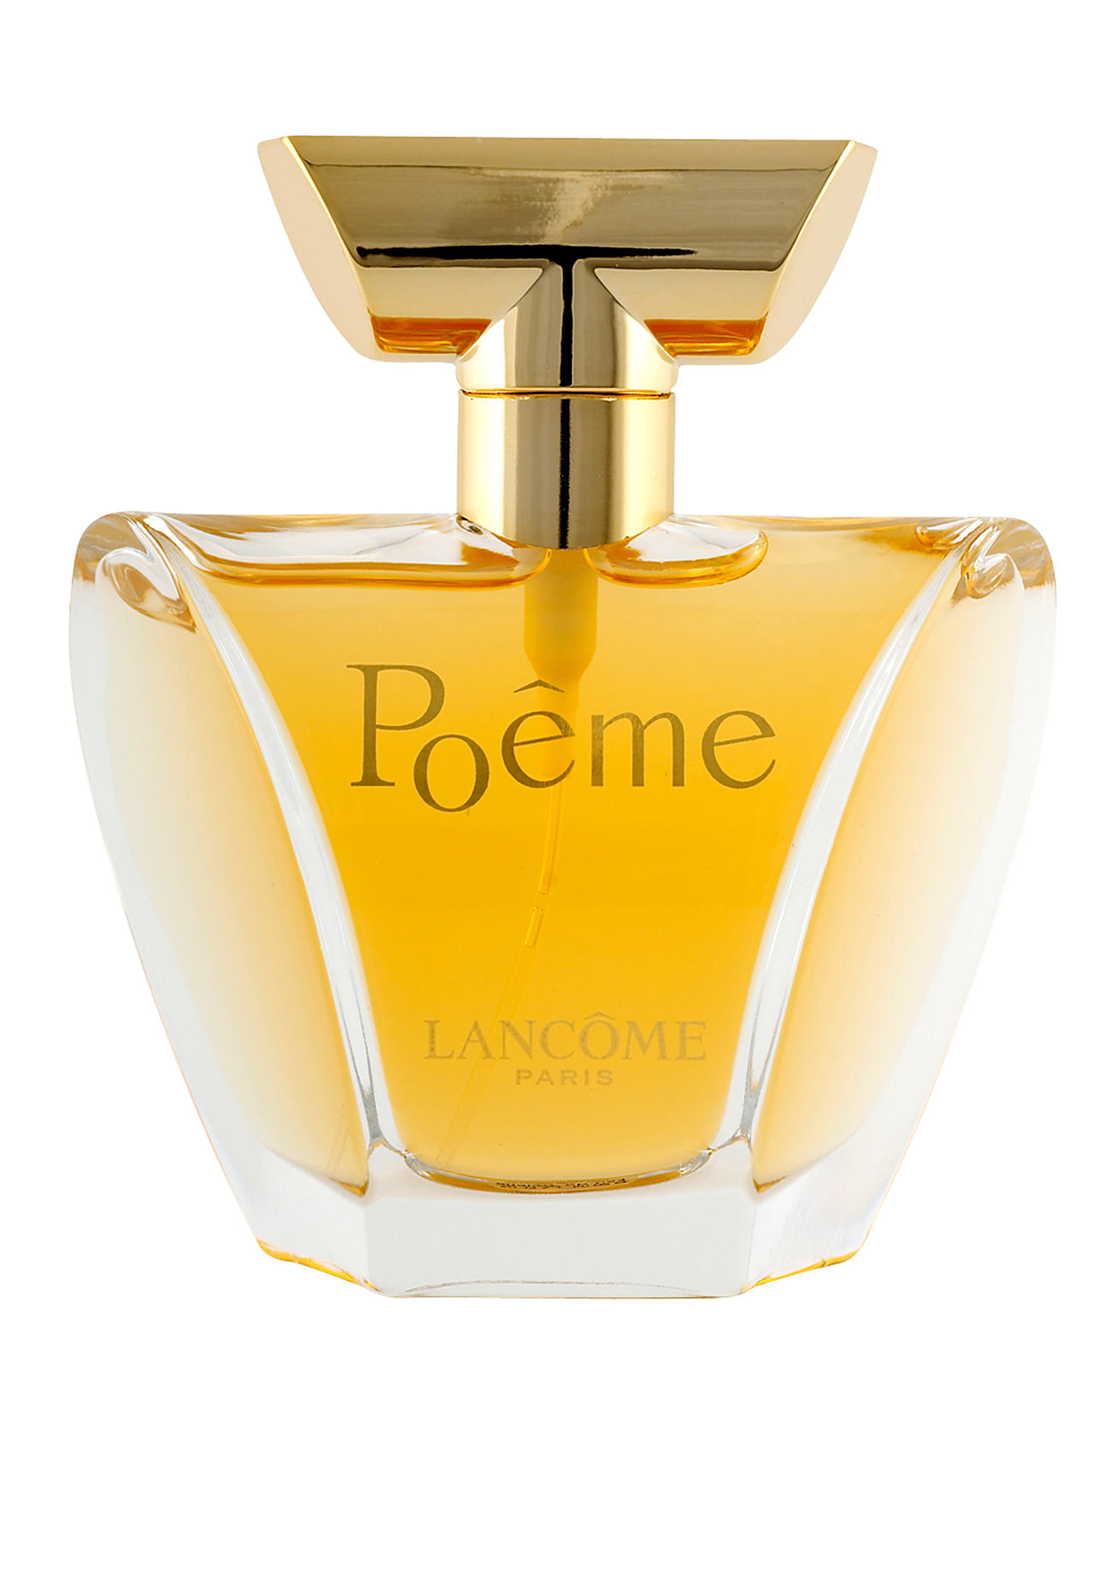 Lancome Poeme Eau De Parfum for Women, 50ml